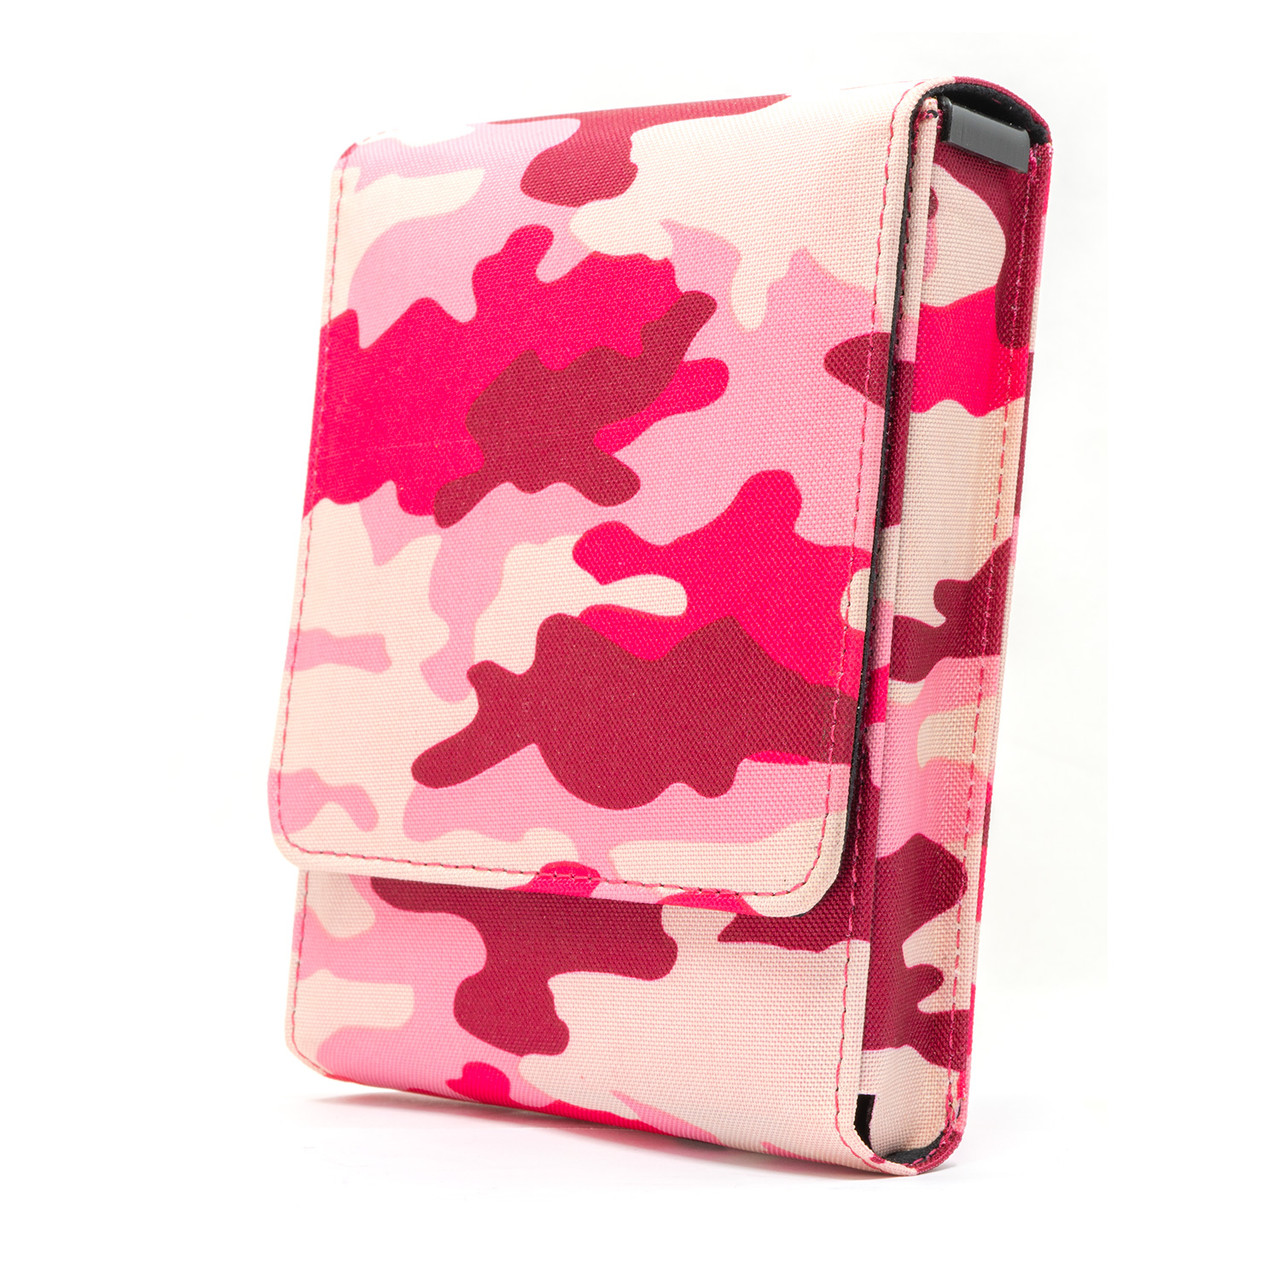 CZ 75D Compact Pink Camouflage Series Holster